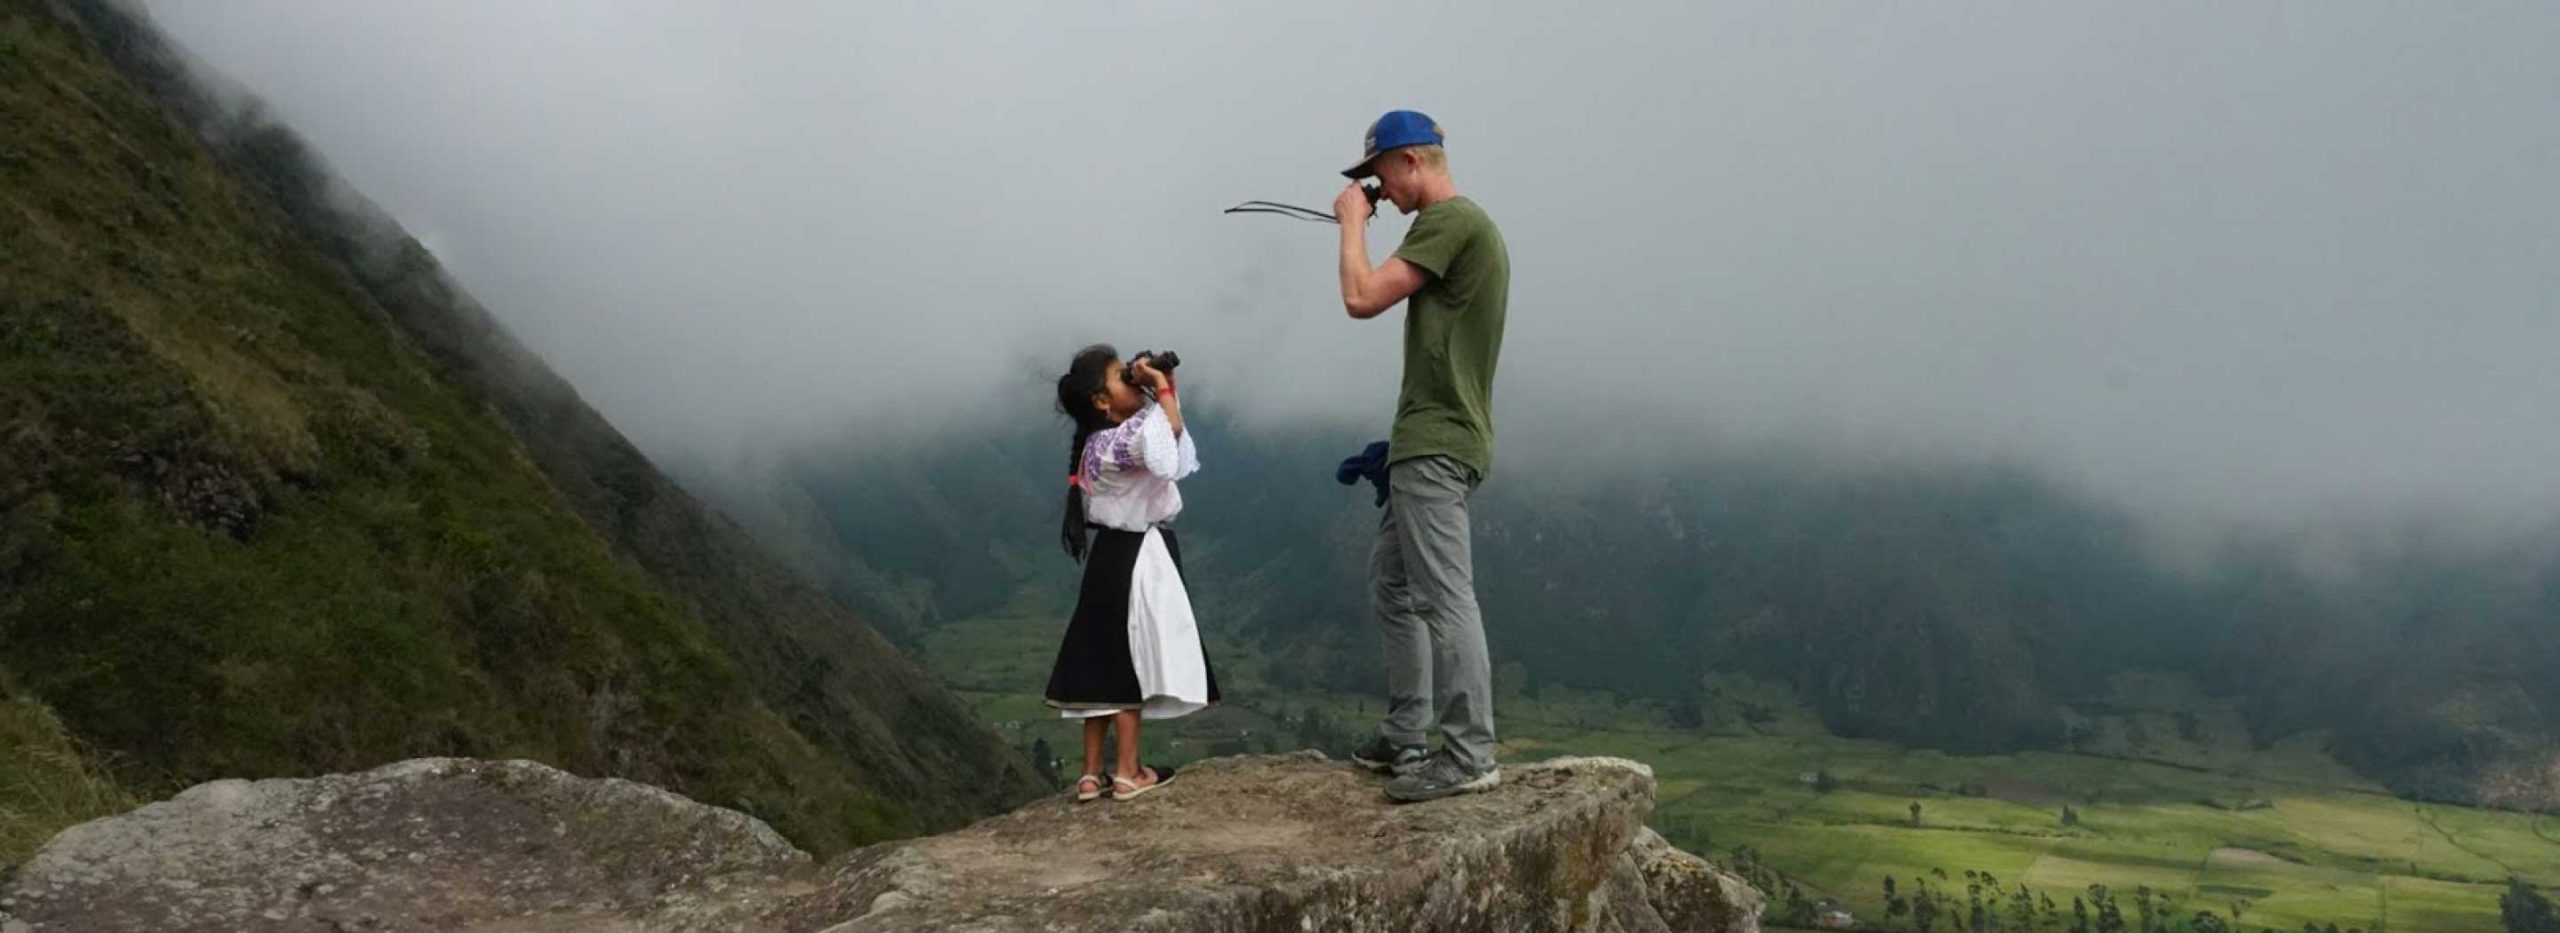 A student and a local inhabitant stare at each other with binoculars while standing atop a mountain.